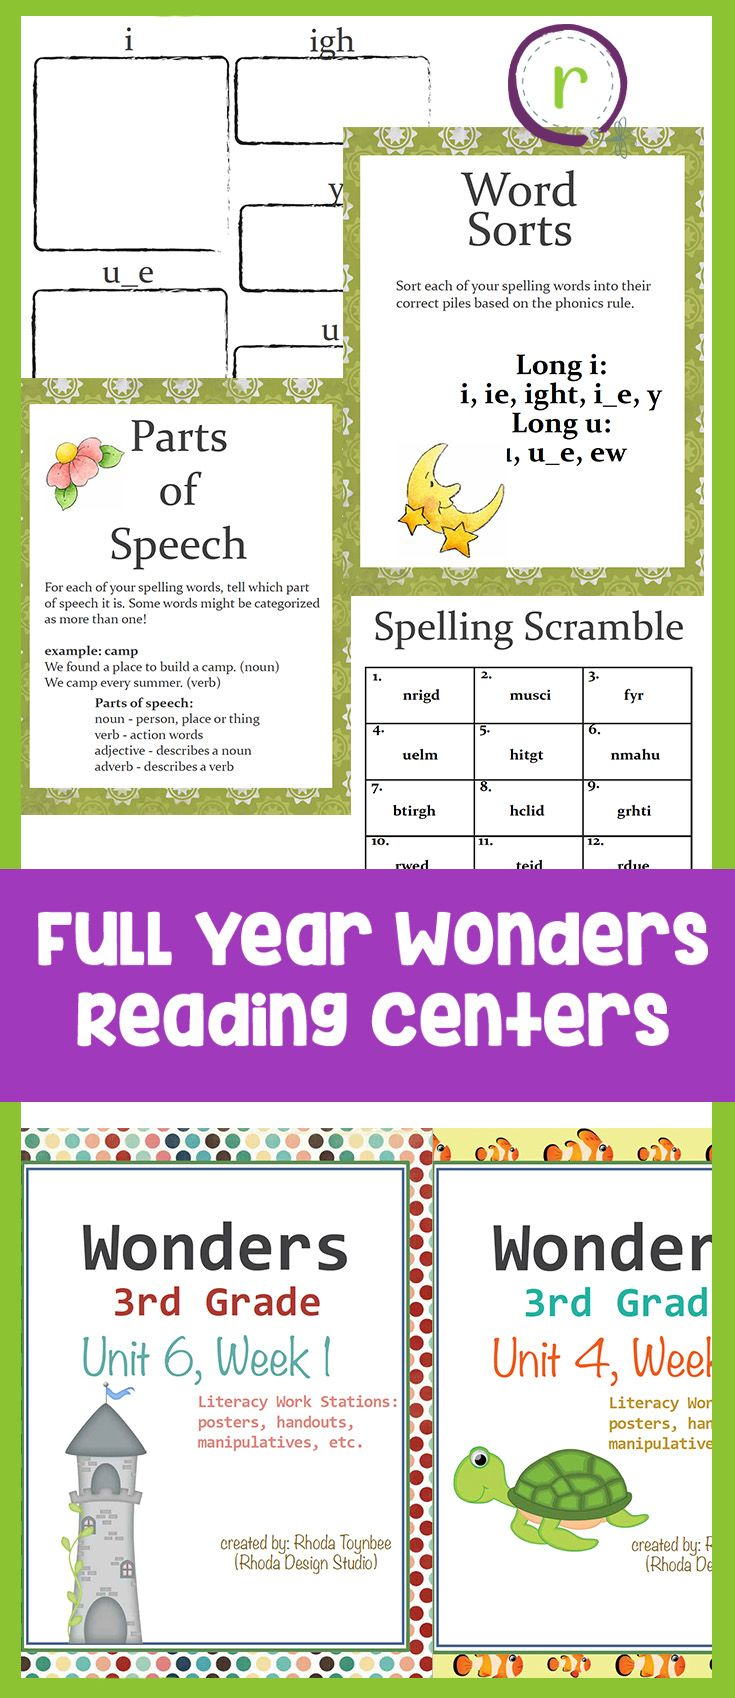 6 reading units with 5 weeks per unit of literacy centers that supplement the Wonders reading program. Unit Focus Posters: Essential Unit Questions Weekly Skills  Literacy Work Stations: Parts of Speech Sentence Editing Flash Cards Word Scramble Word Sort Prefixes/Suffixes Match-up Word Match: Synonyms Word/Definition Match-up  Comprehension/Organization Graphic Organizers (for each story)